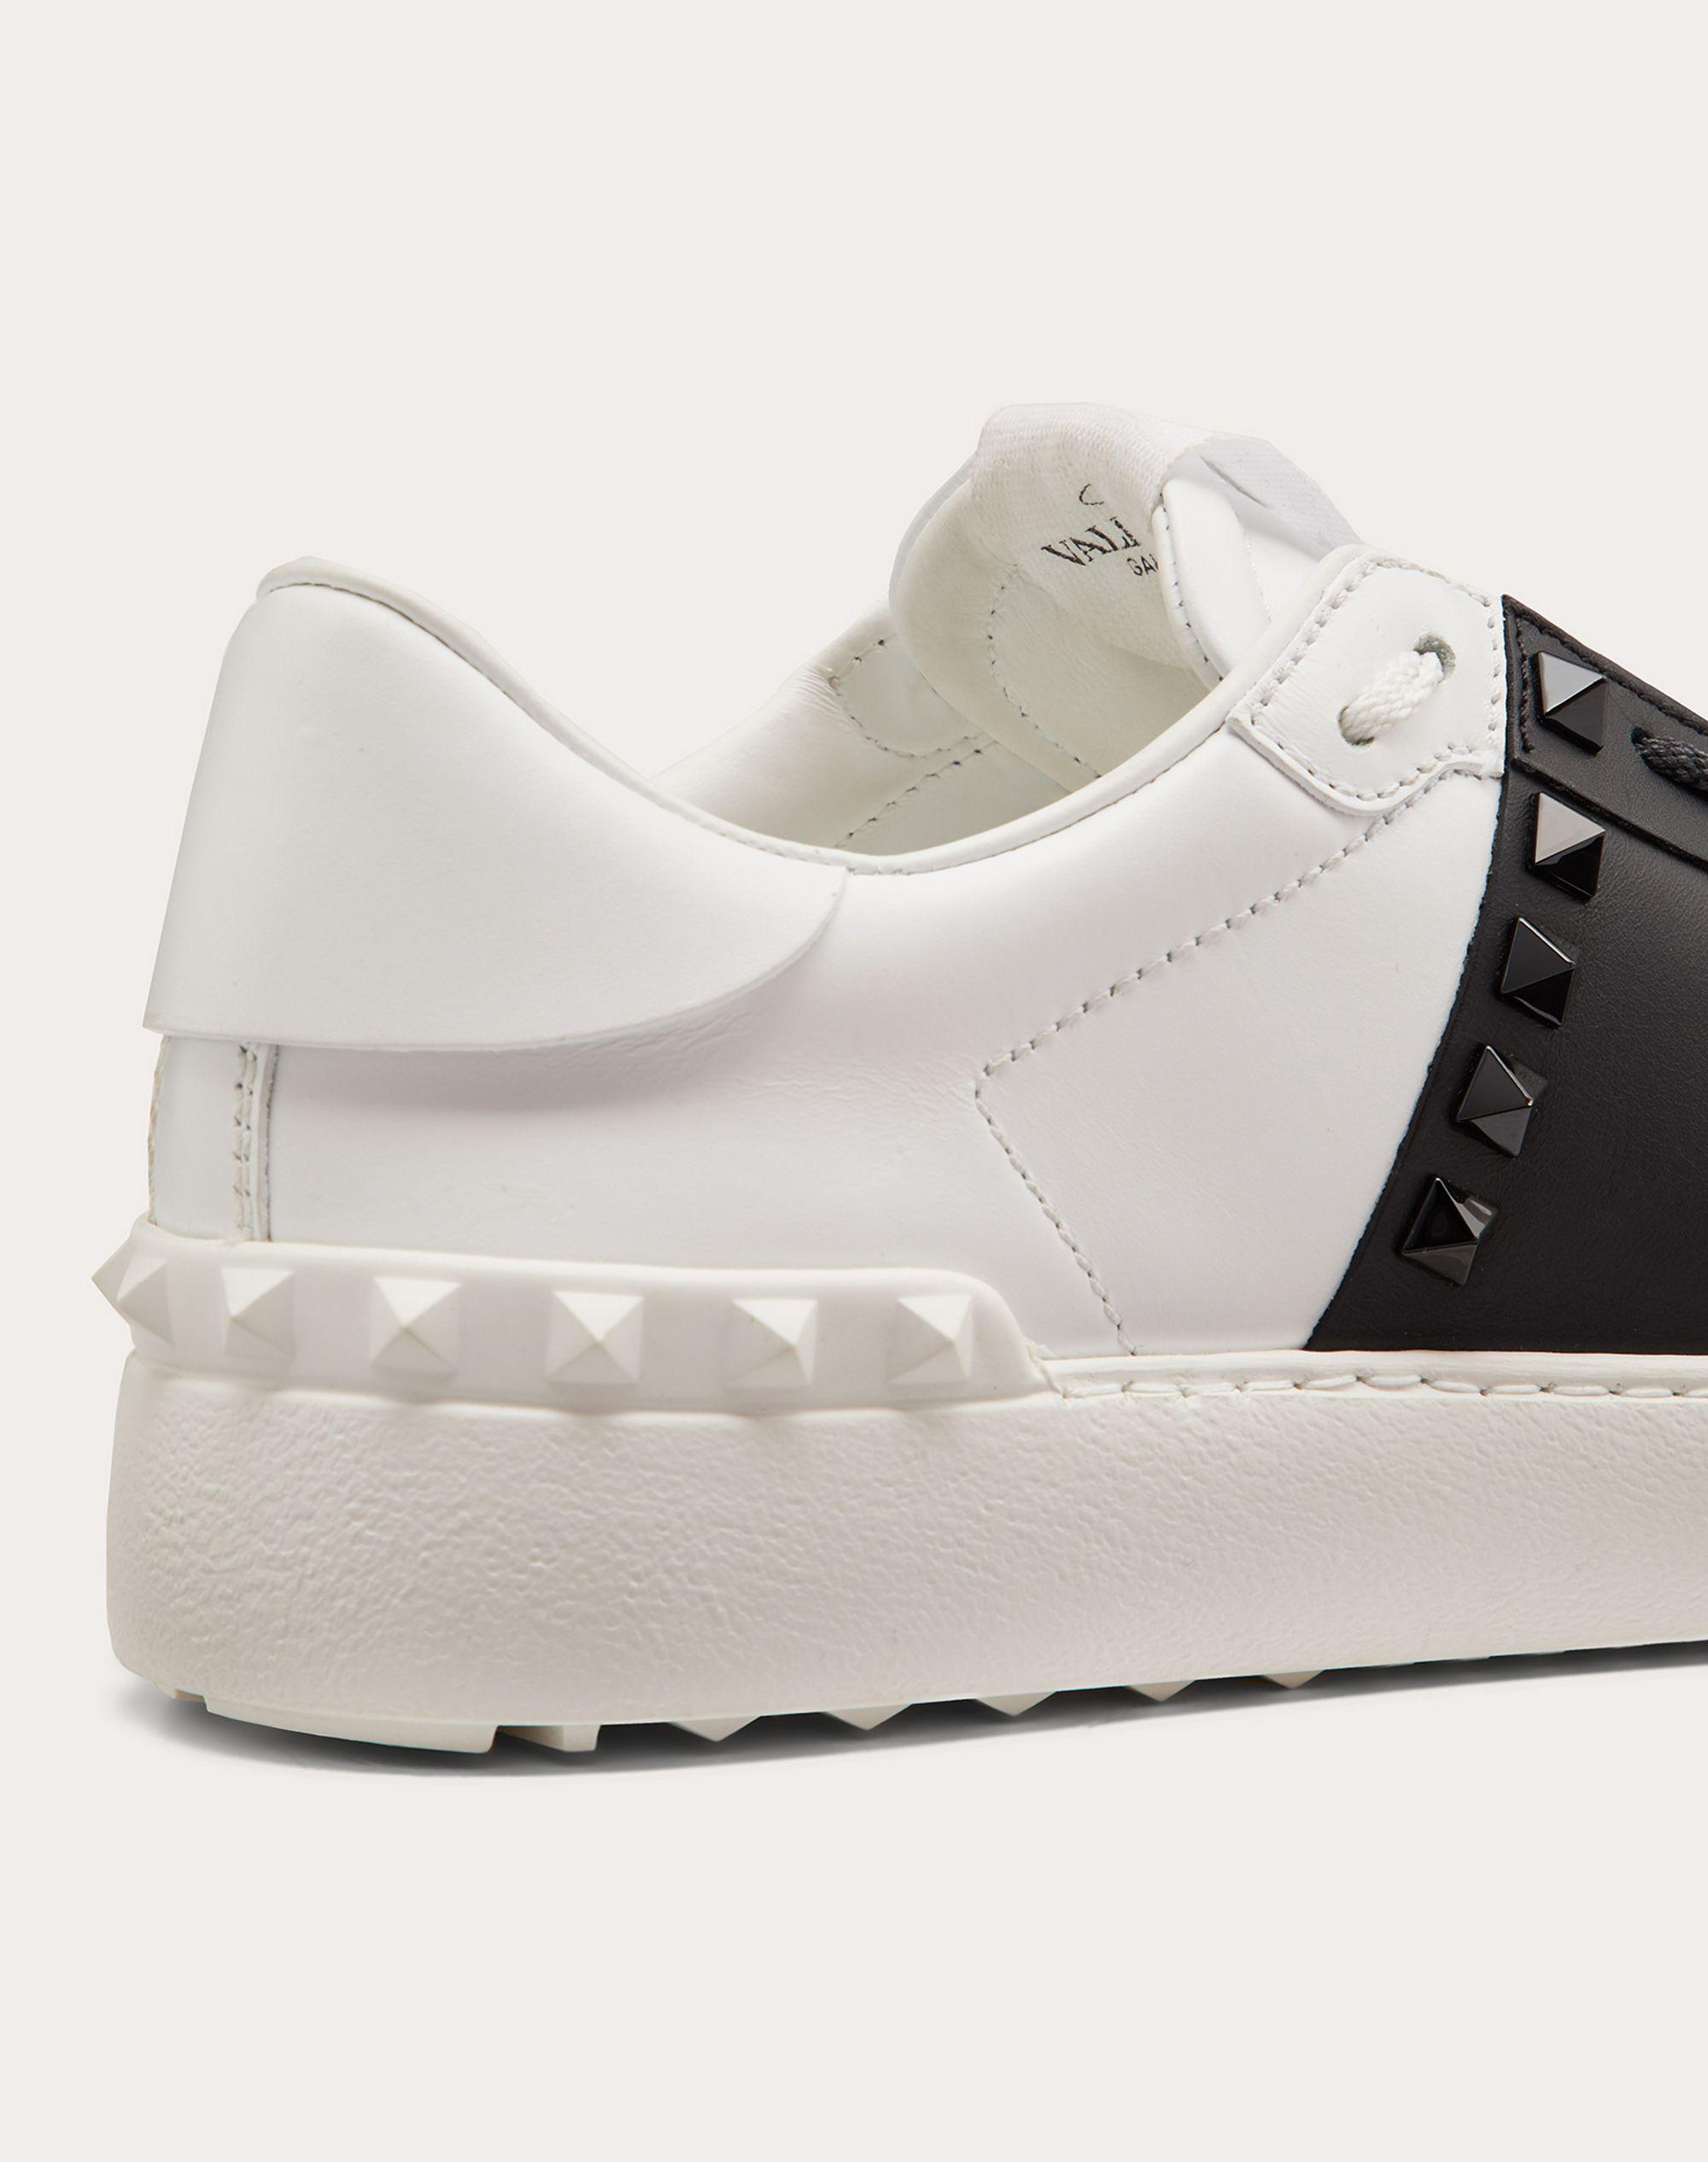 Rockstud Untitled Sneaker in Calfskin Leather with Tonal Studs 4